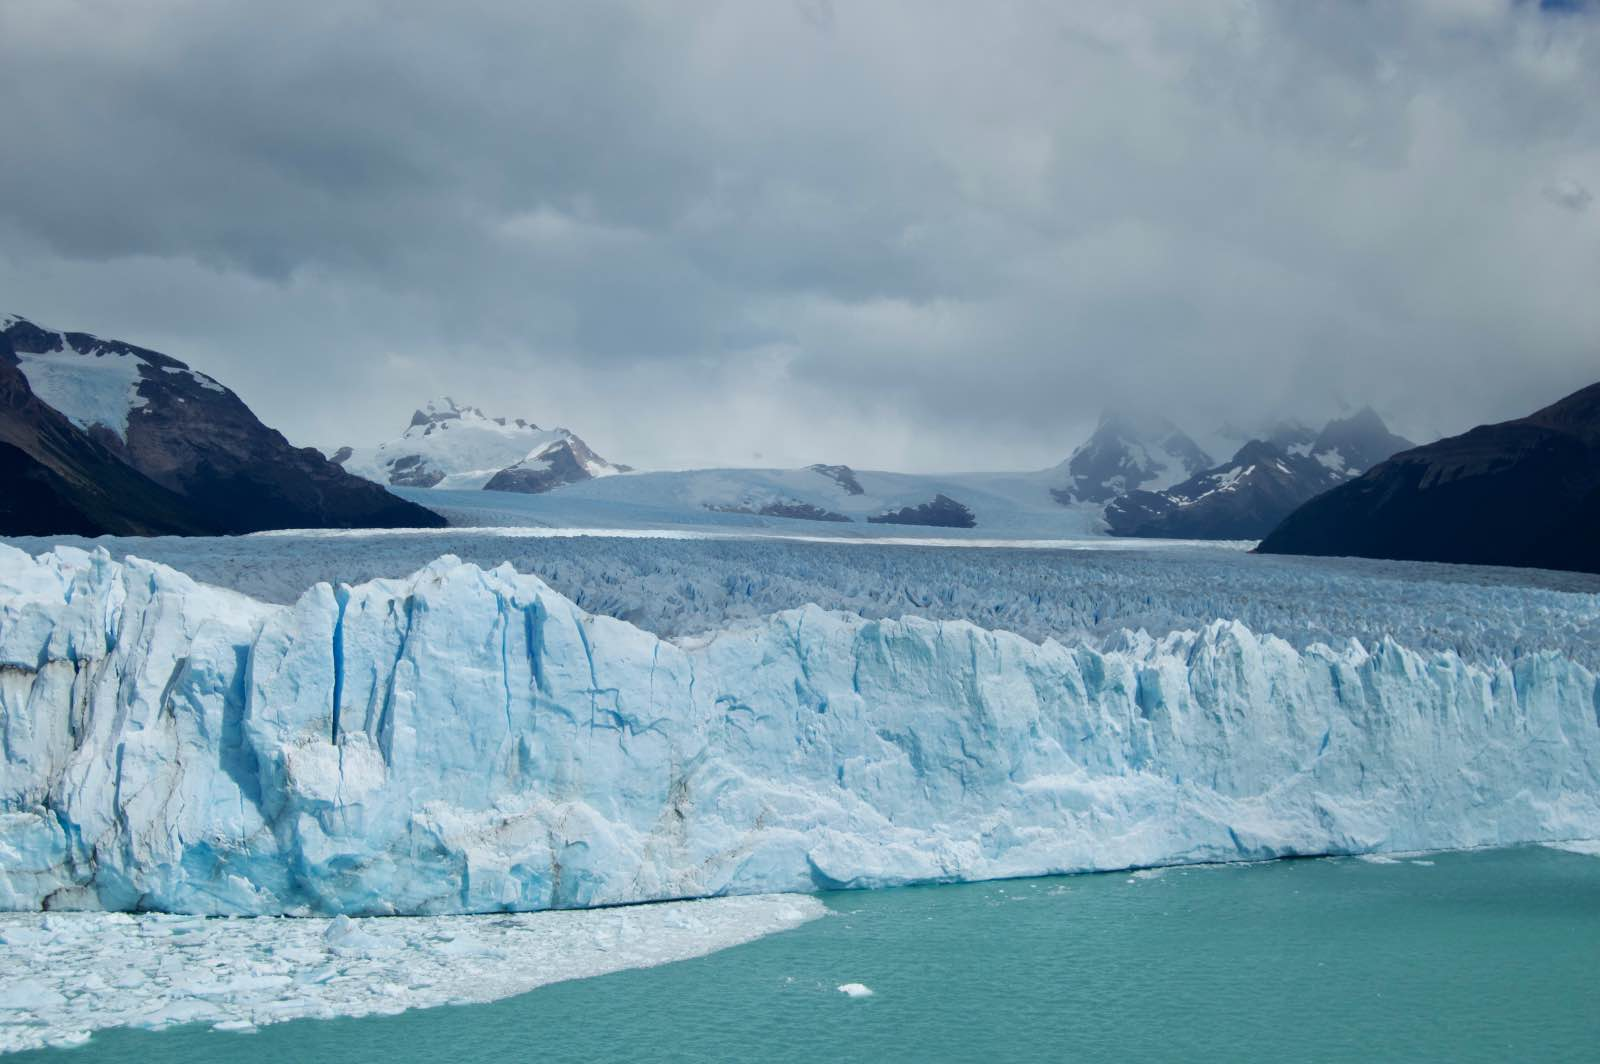 The expanse of Perito Moreno can not be seen from one place. It is 30km in length and only about 1km can be seen from the viewpoint